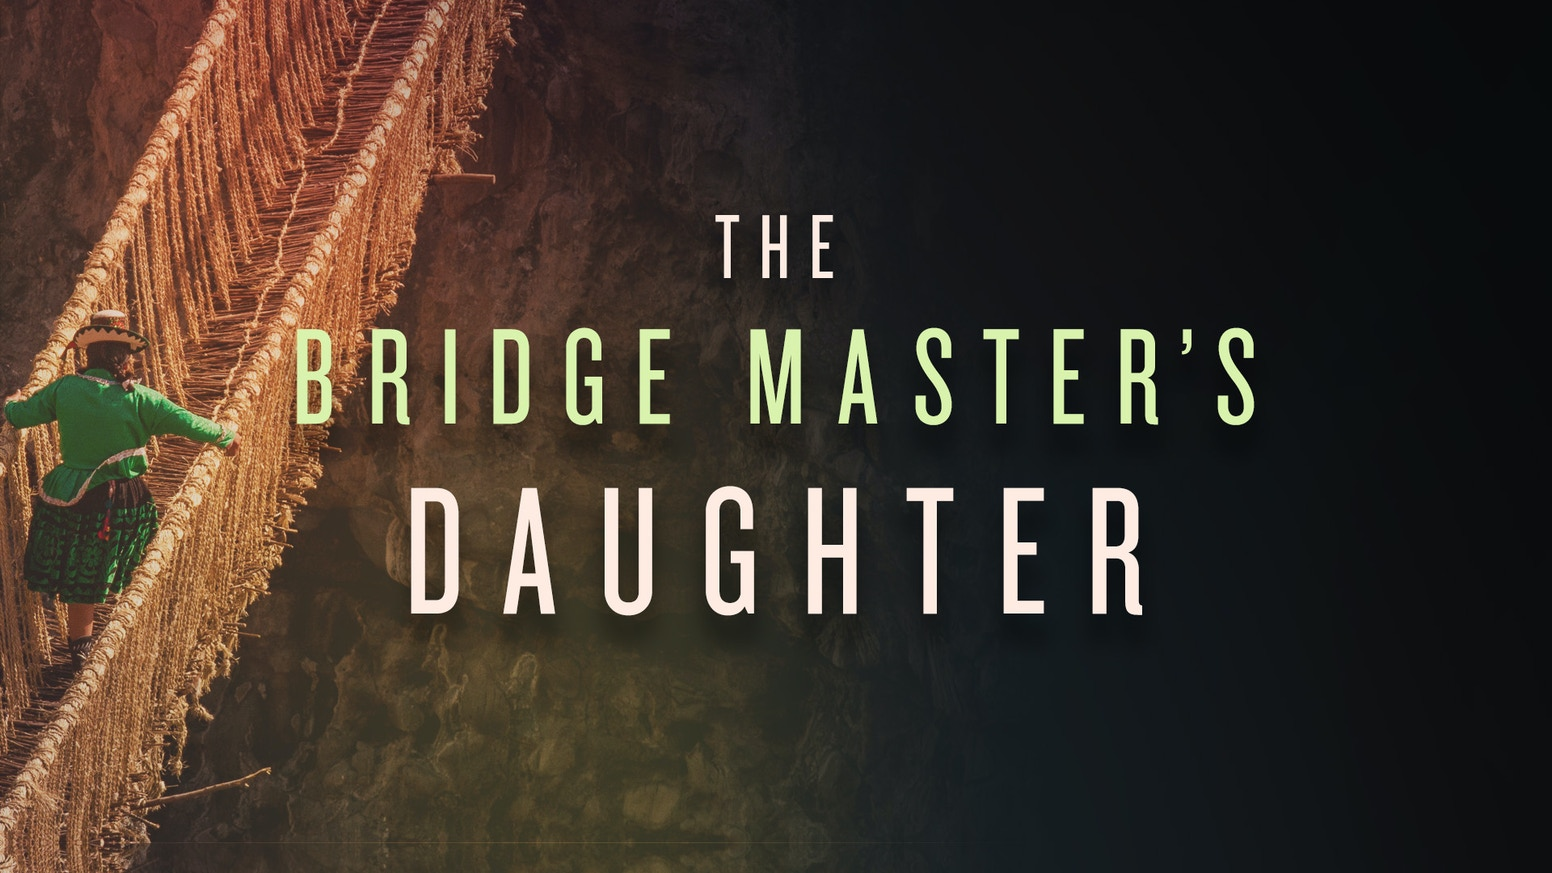 A father and master of a 300-year-old bridge weaving tradition struggles to maintain his culture as his daughter tries to escape it.